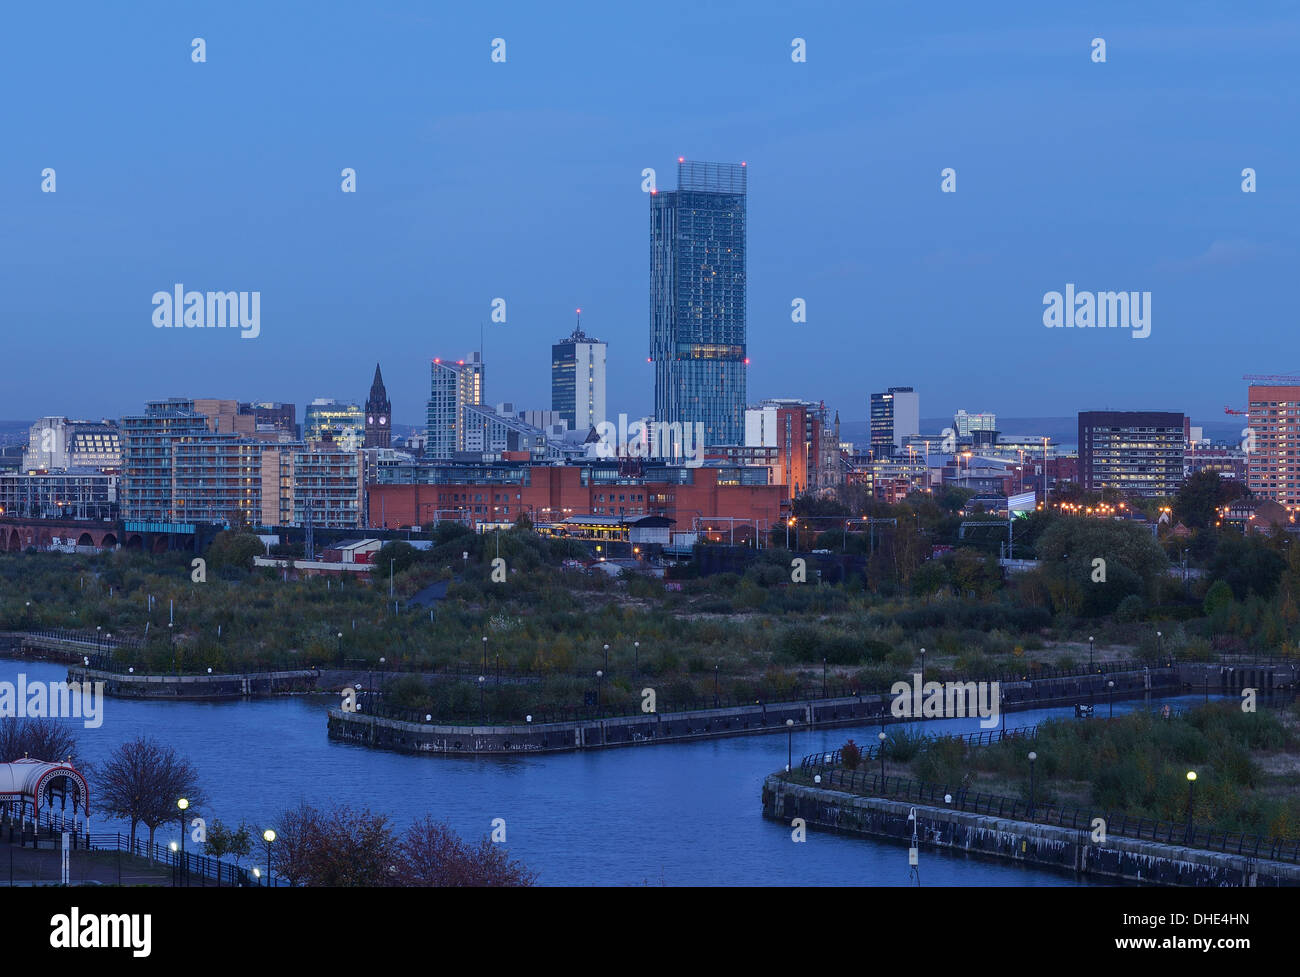 Manchester city centre skyline at dusk including the Town Hall and Beetham Tower - Stock Image